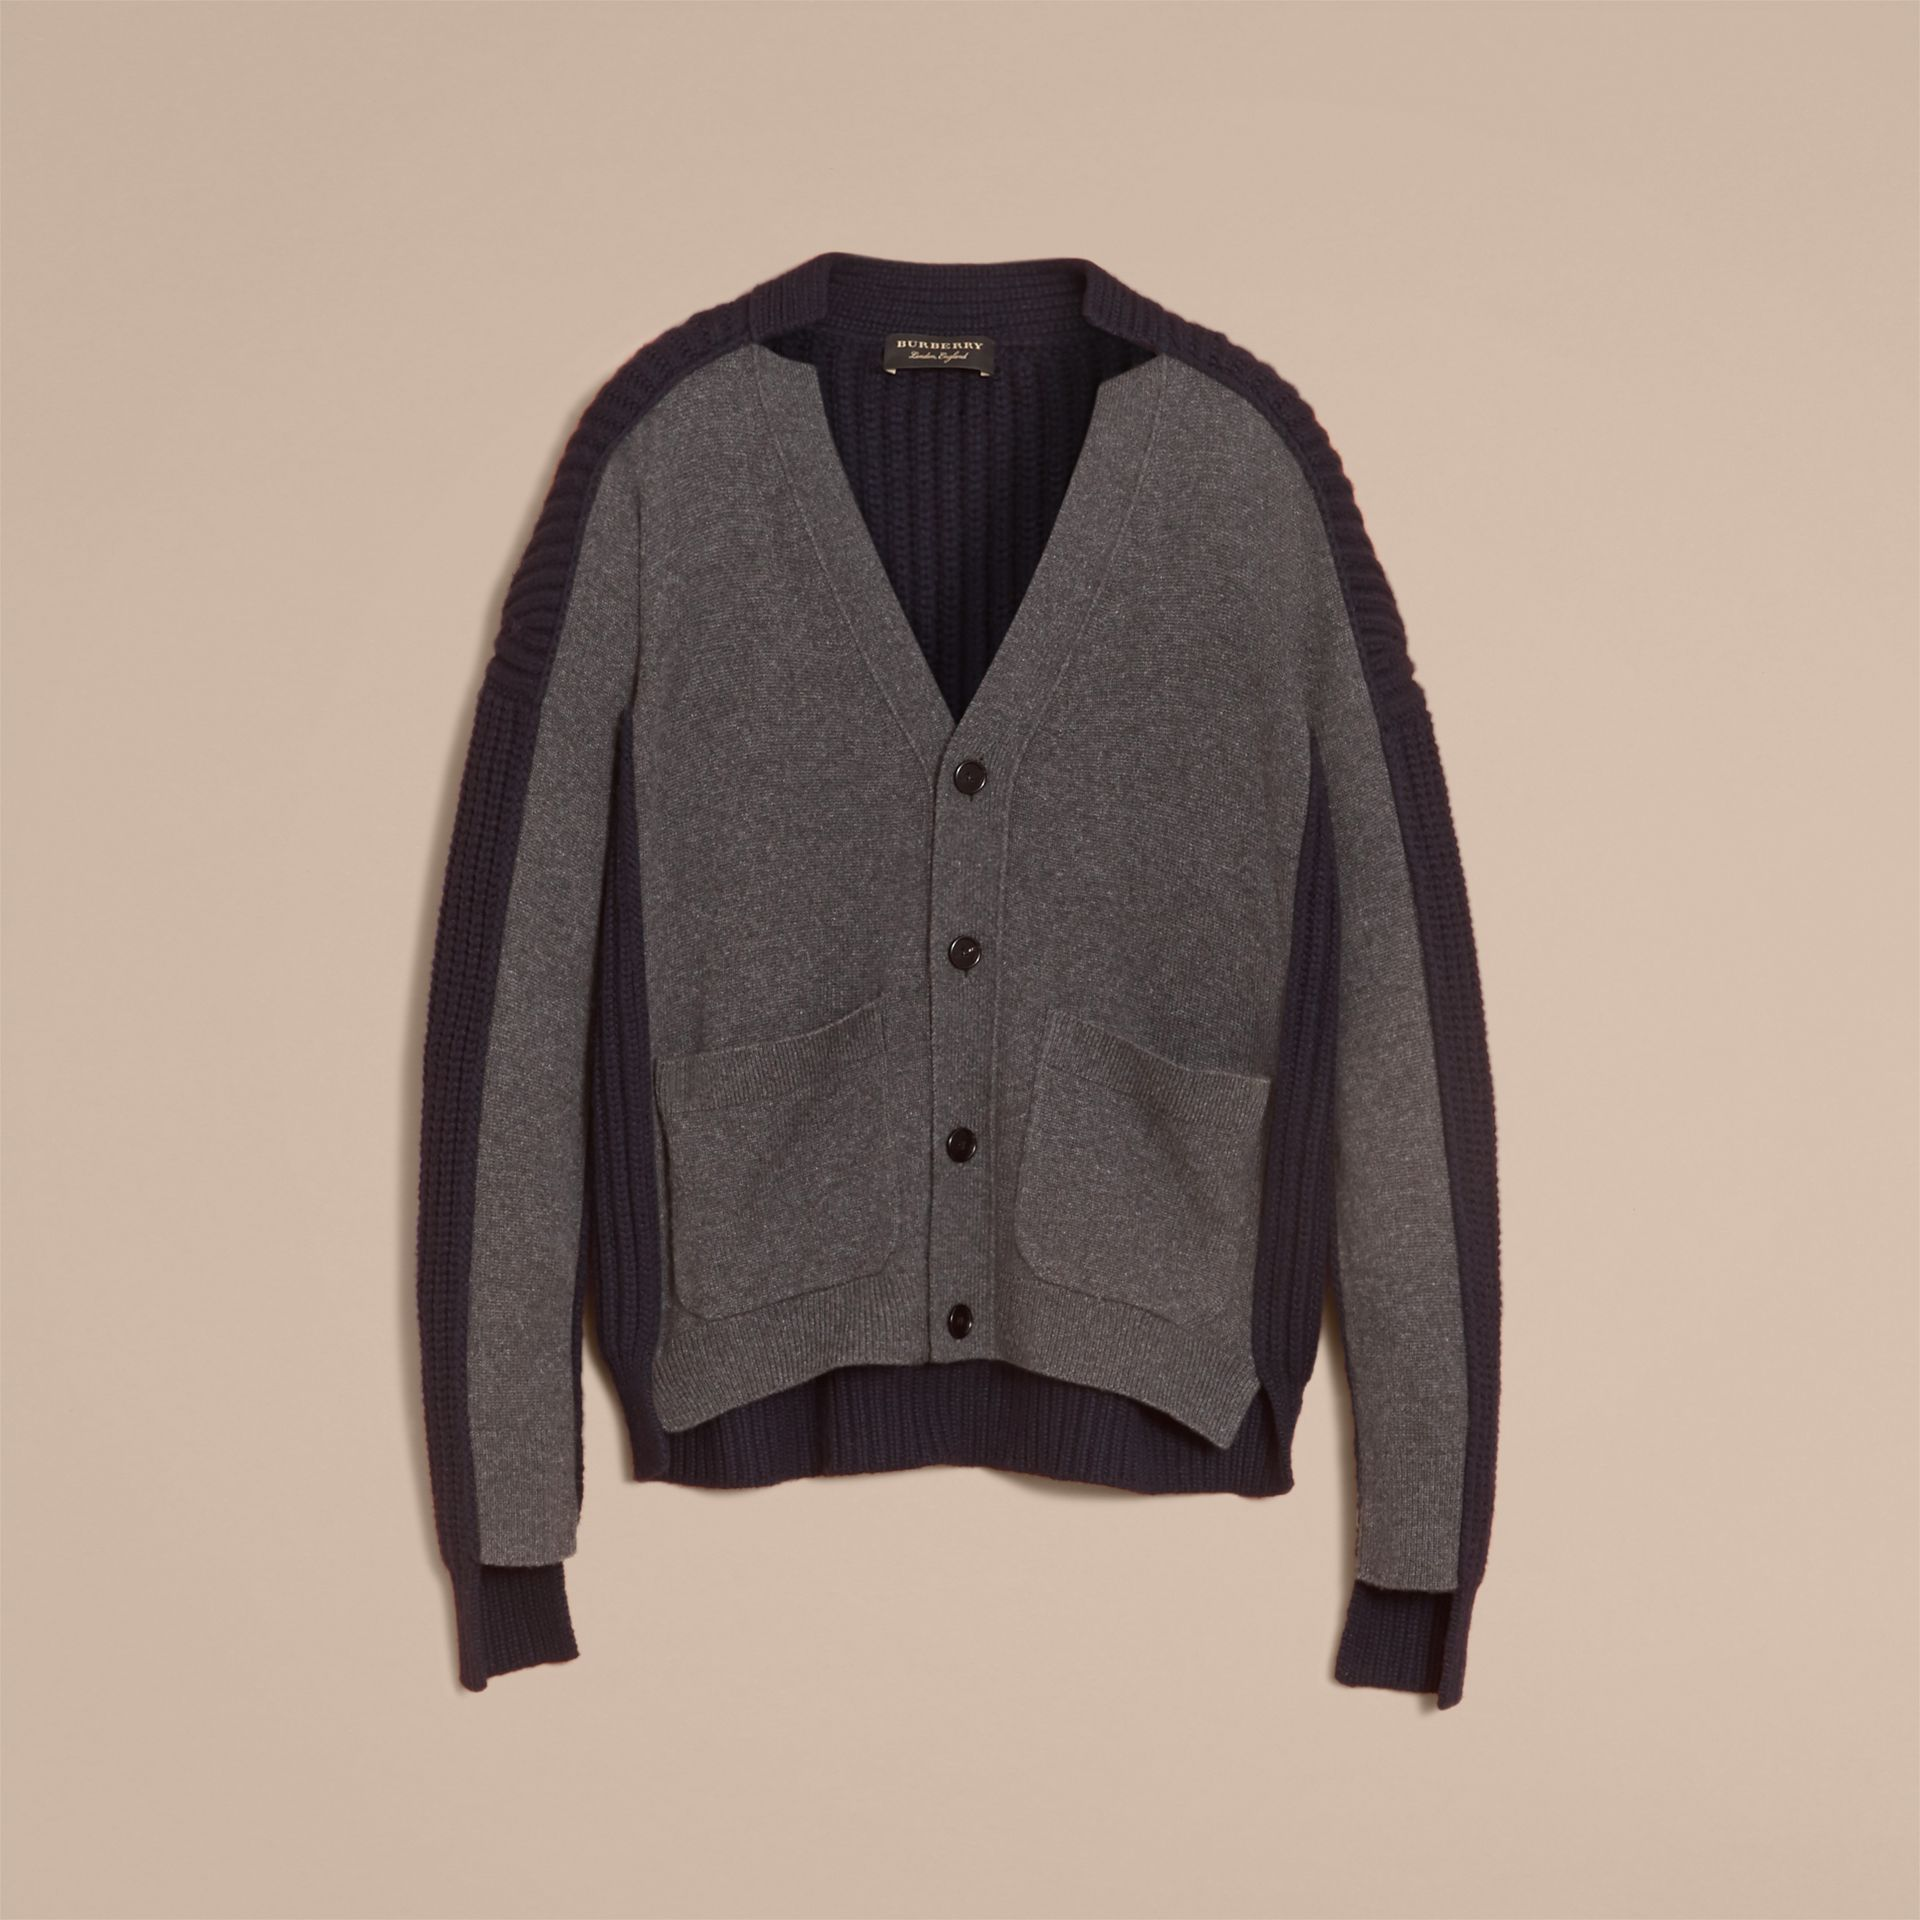 Two-tone Cashmere Cardigan with Ribbed Detail - Men | Burberry - gallery image 4